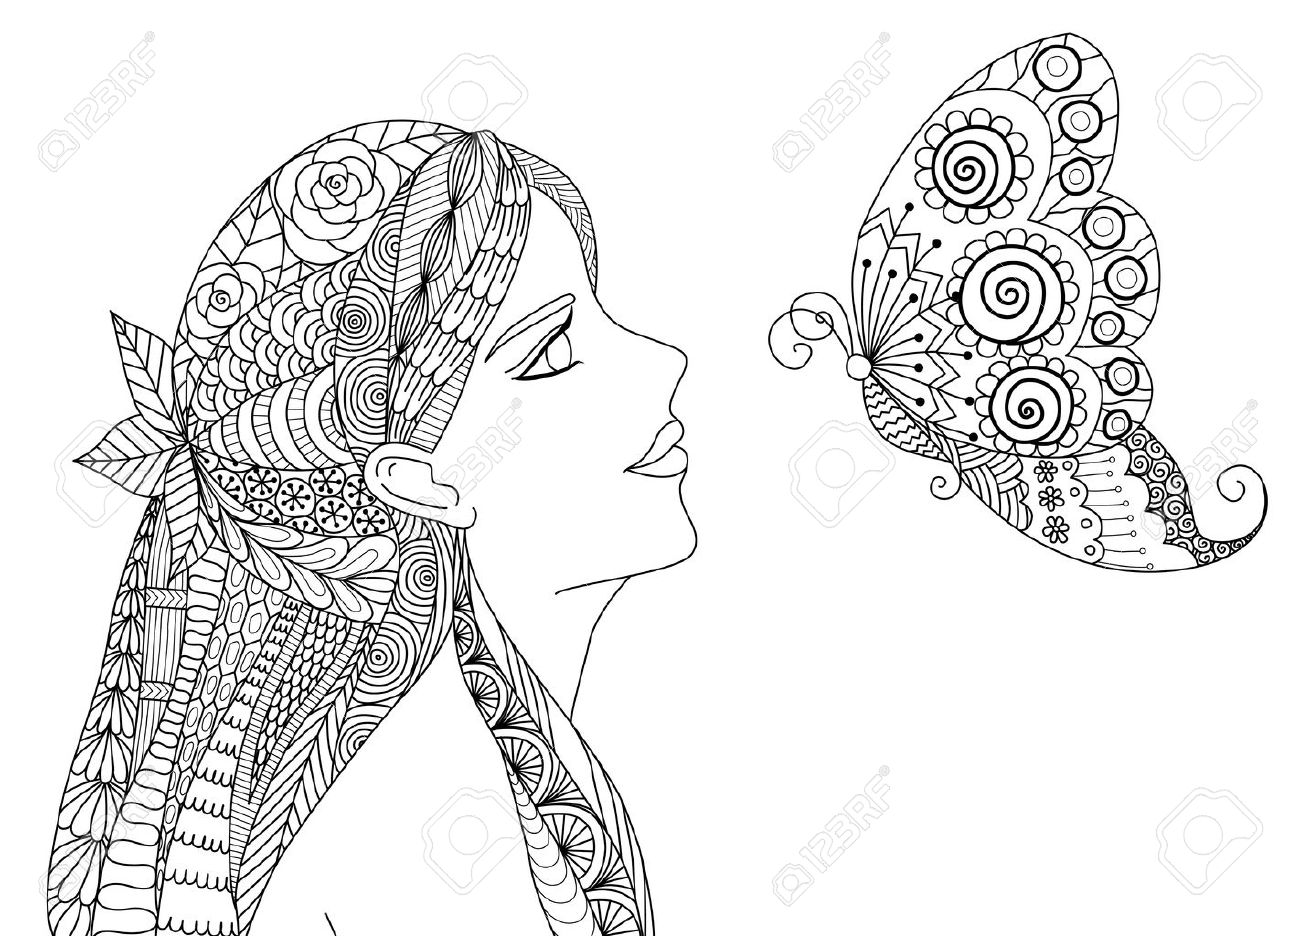 Coloring book for girl - Pretty Girl Looking At Flying Butterfly Design For Coloring Book For Adult Stock Vector 50130748